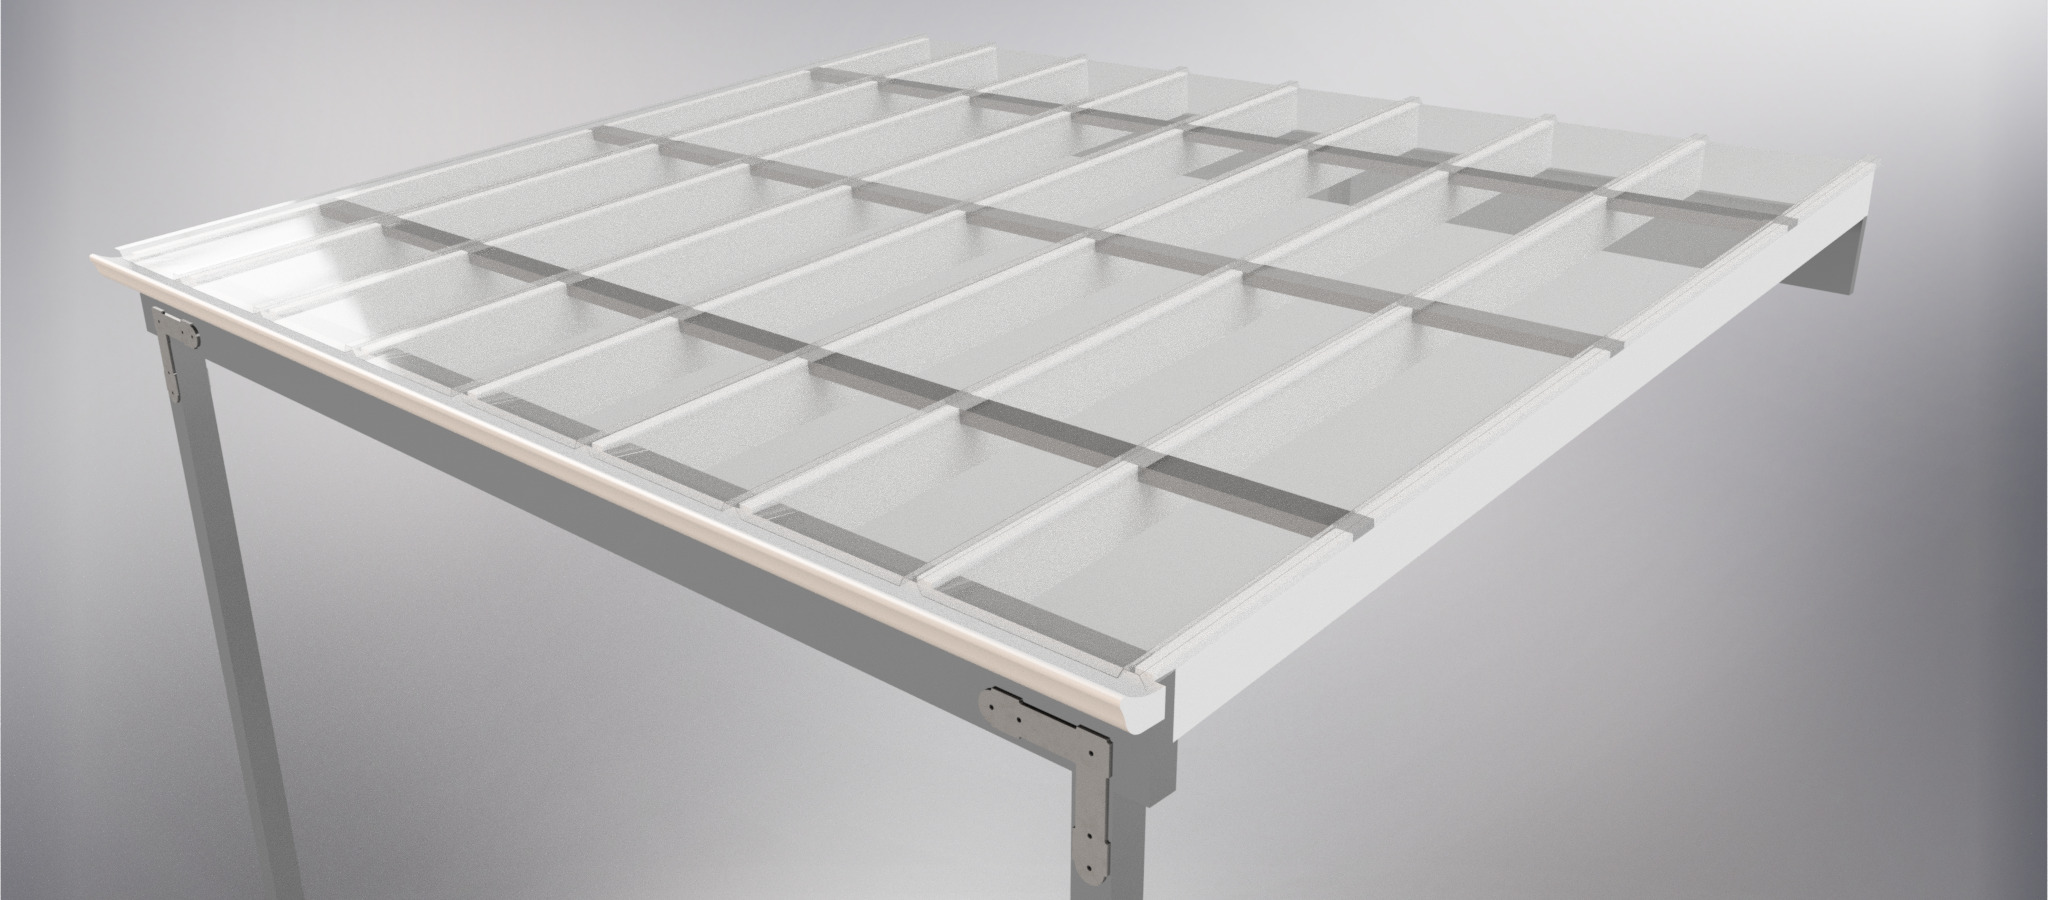 Custom Glaze polycarbonate top view rafters purlins